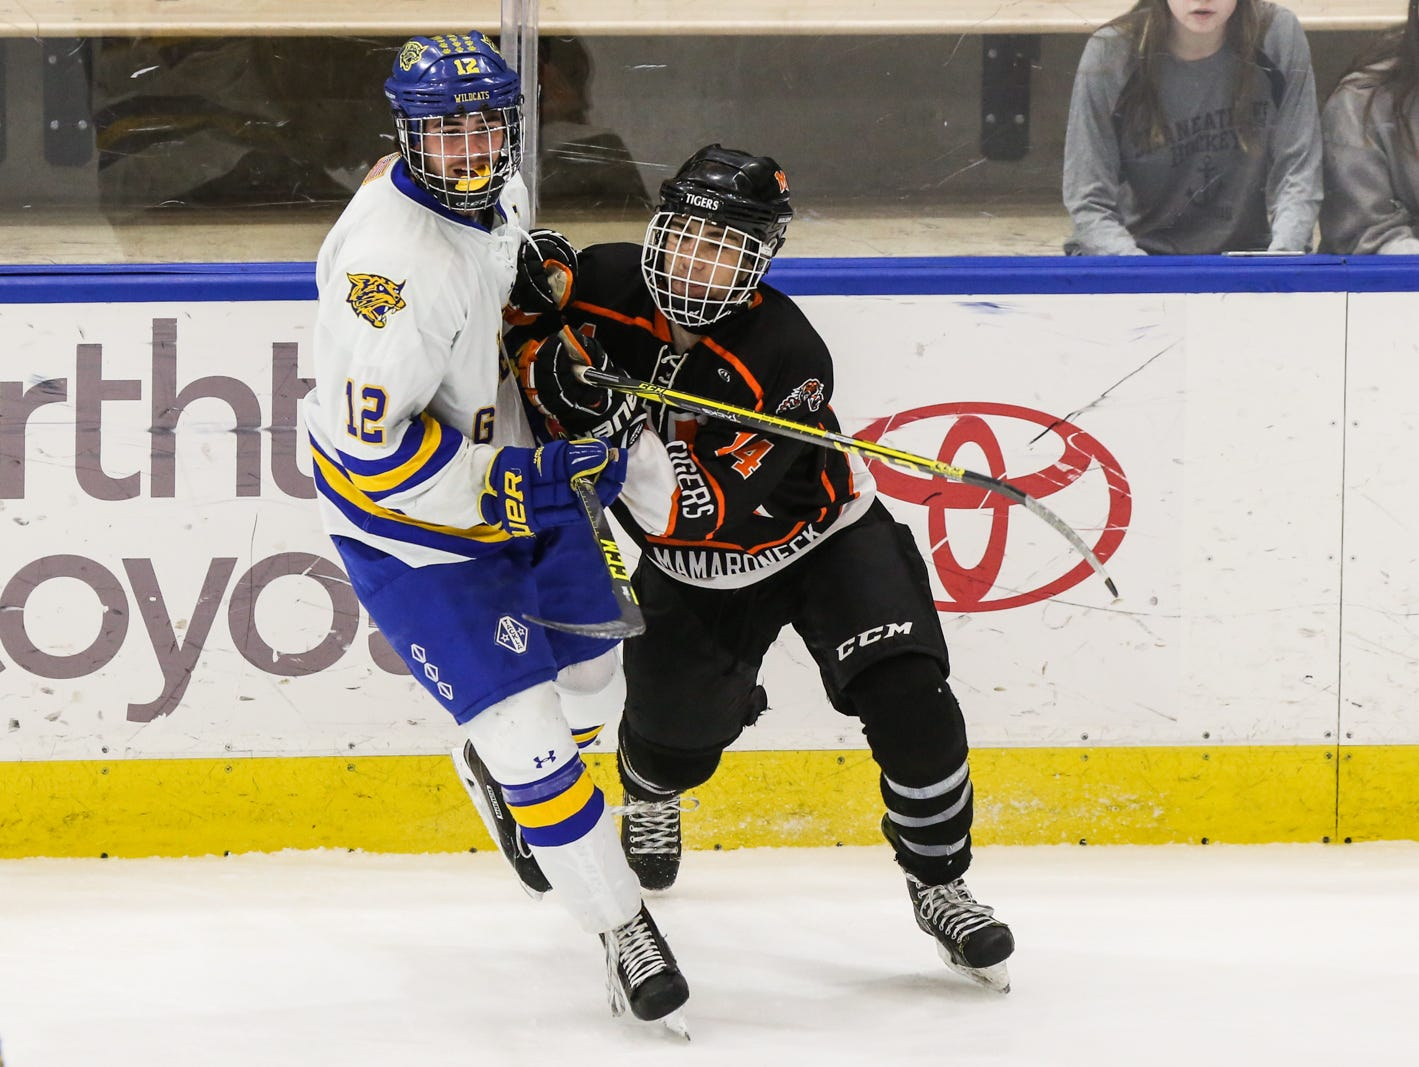 Mamaroneck's Tucker Leicht (14) checks West Genesee's Matthew McDonald (12) in the first period. Mamaroneck defeated West Genesee 1-0 and won the NYSPHSAA Division 1 HarborCenter in Buffalo, NY.